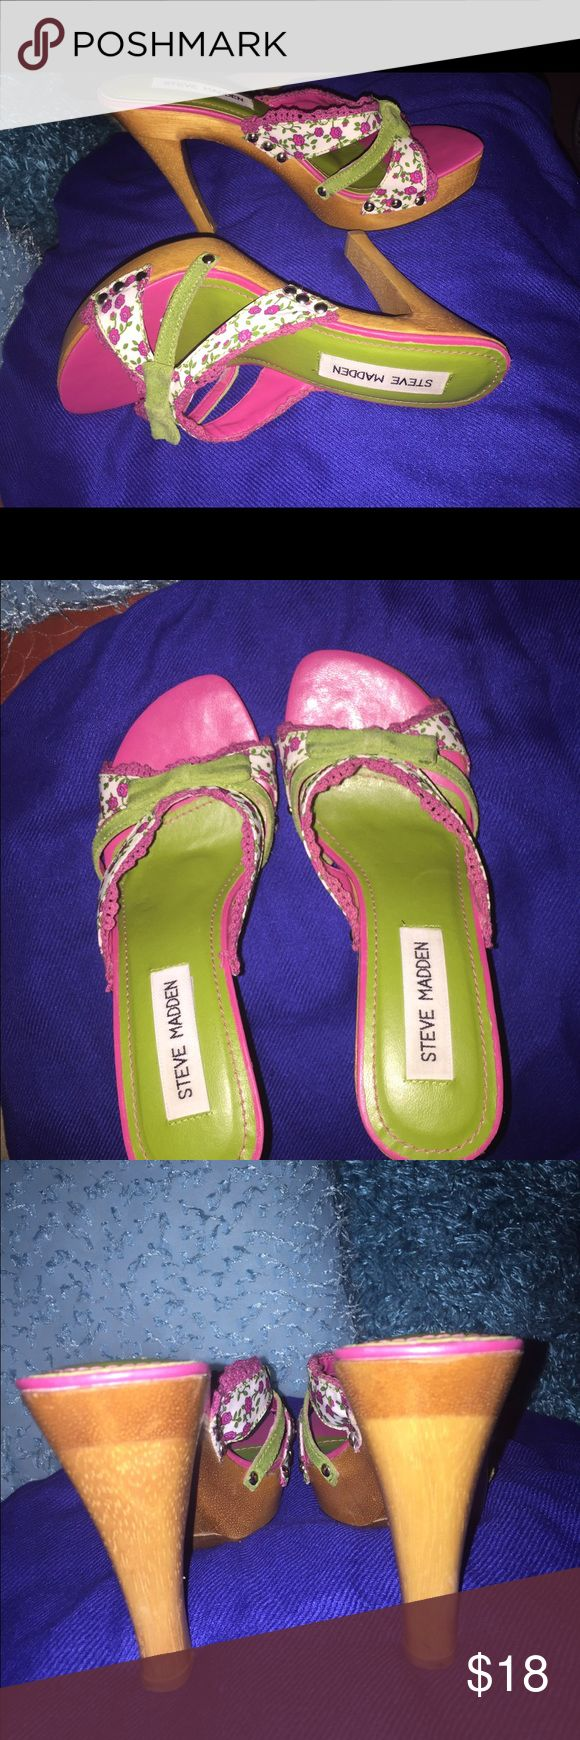 """Steve Madden Luckii Floral heel sandals size 5.5 Steven Madden -Lucki- Multicolor Floral high heel sandals size 5.5. Very good condition. The heel its a proximately 5"""". Steve Madden Shoes Heels"""